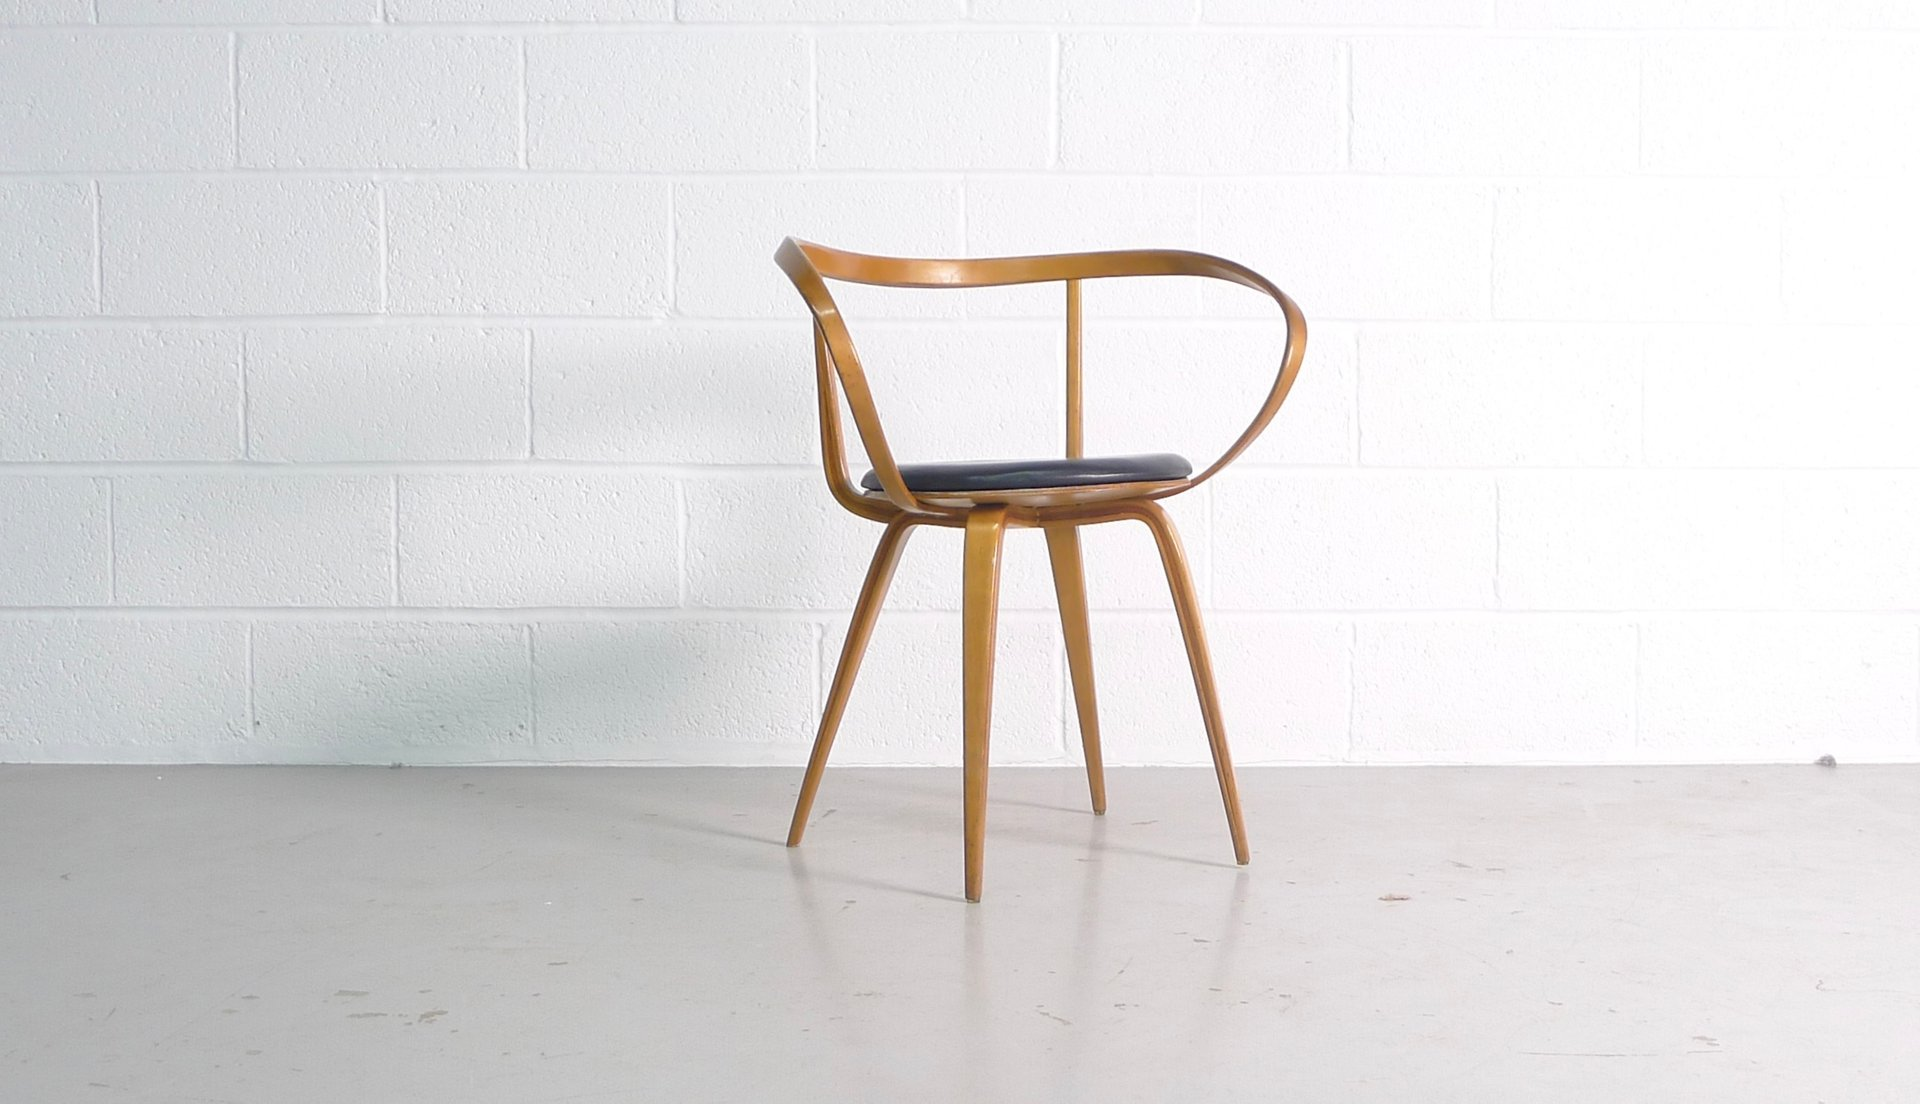 Model 5891 Pretzel Chair by George Nelson for Herman Miller 1950s